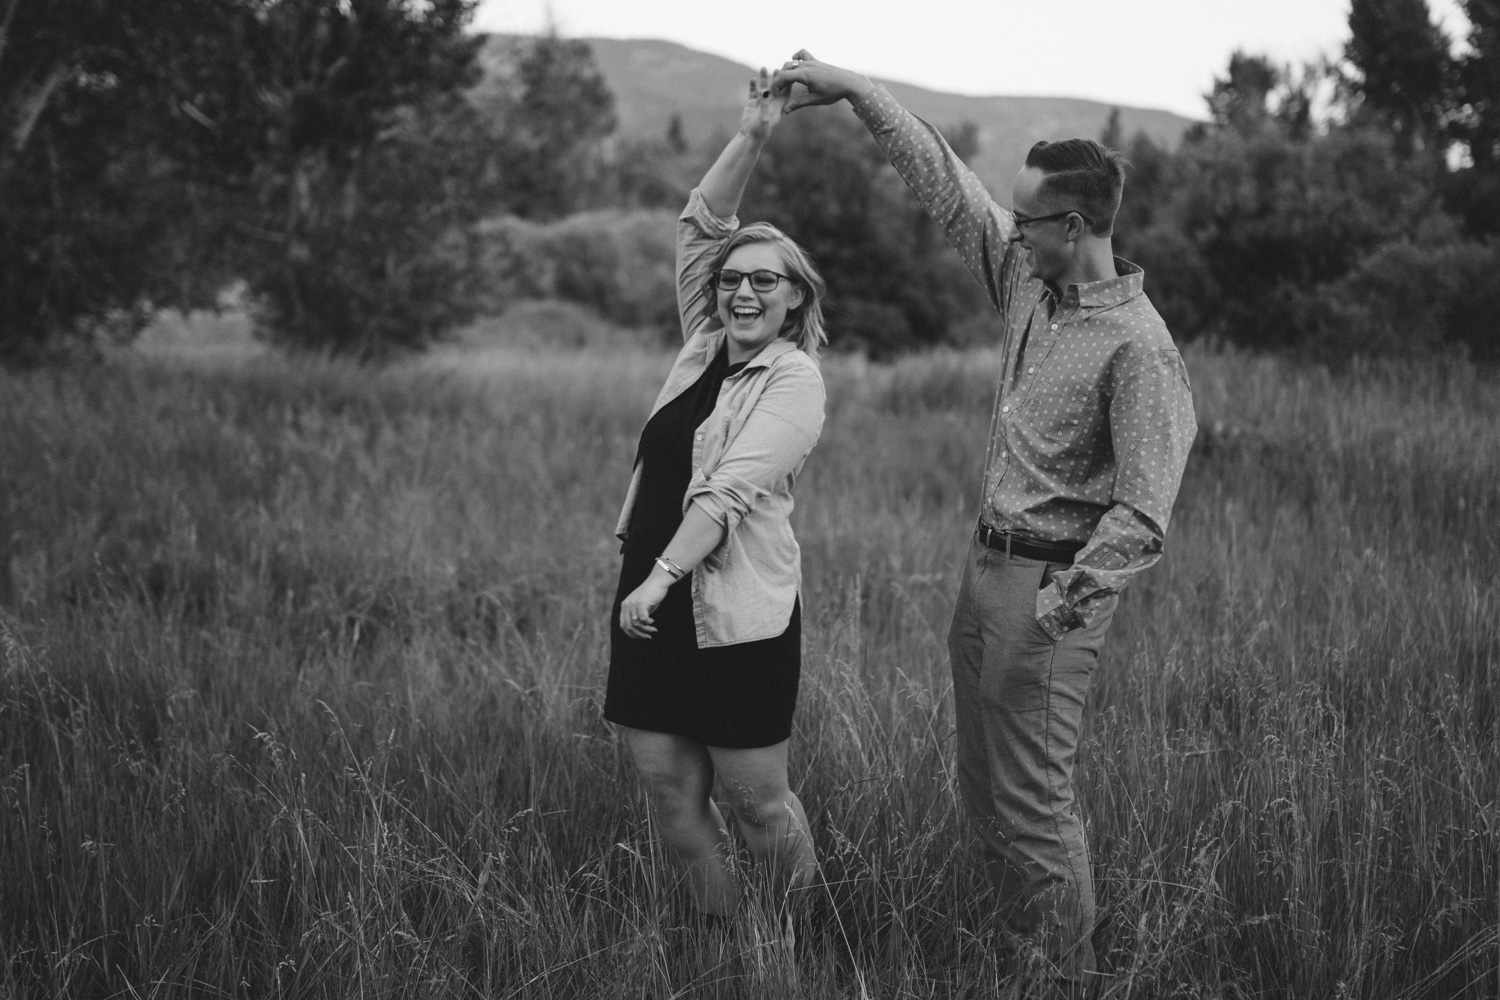 Verdi, NV | Anniversary Pictures | Elsa Boscarello Photography